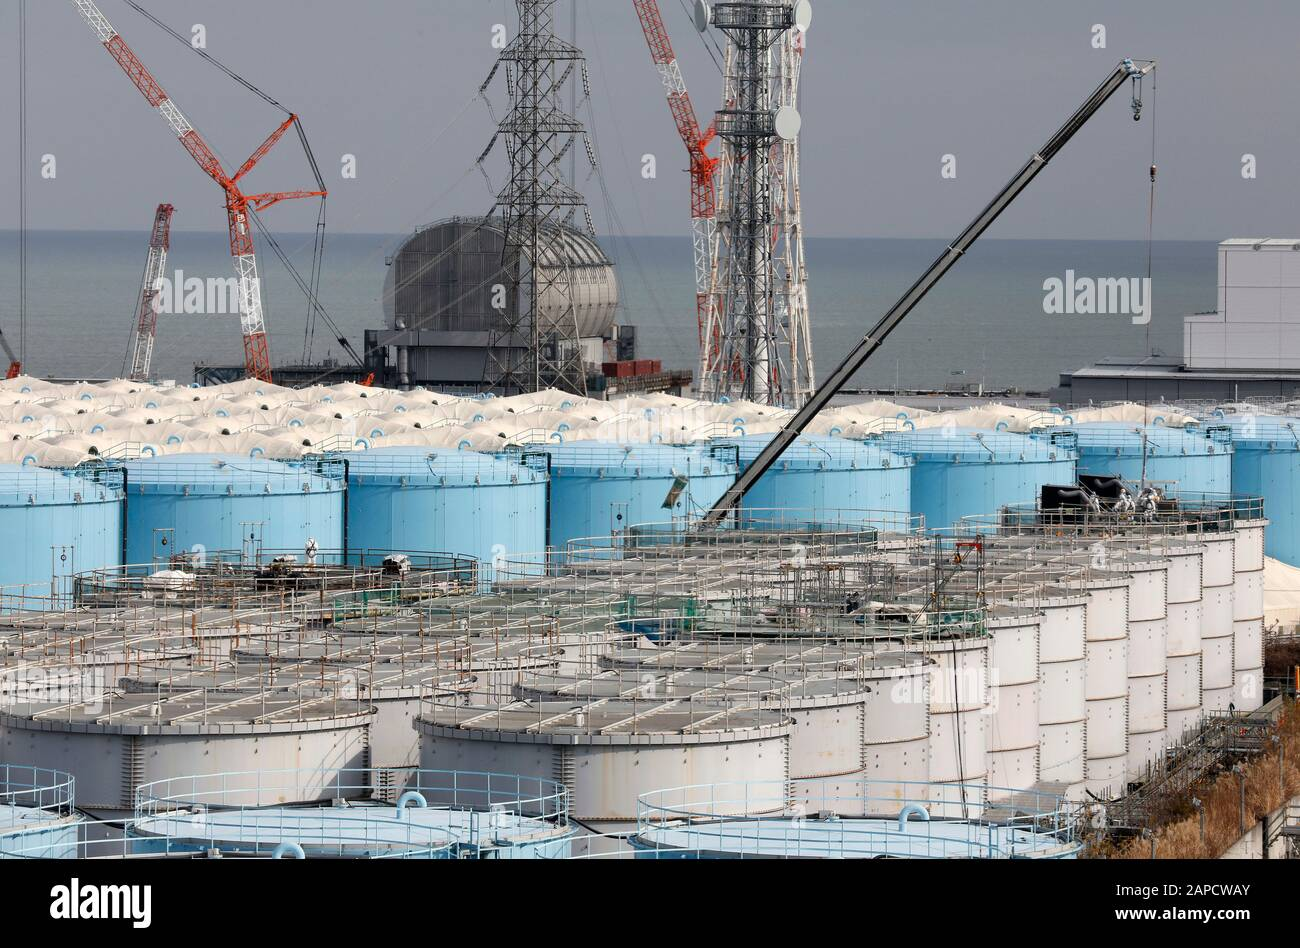 Okuma, Fukushima, Japan. 22nd Jan, 2020. Workers demolish old storage tanks included water processed in ALPS(Multi-nuclide retrieval equipment) at tsunami-devastated Tokyo Electric Power Company (TEPCO) Fukushima Daiichi Nuclear Power Plant in Okuma town, Fukushima Prefecture, 22 January 2020 after transferring to new tanks. The storage tanks including water processed in the ALPS will be full around summer of 2022, TEPCO has told. Japanese government will need to decide soon how manage the processed water still including tritium. The Unit 3 reactor house in left rear and the Unit 4 reactor Stock Photo